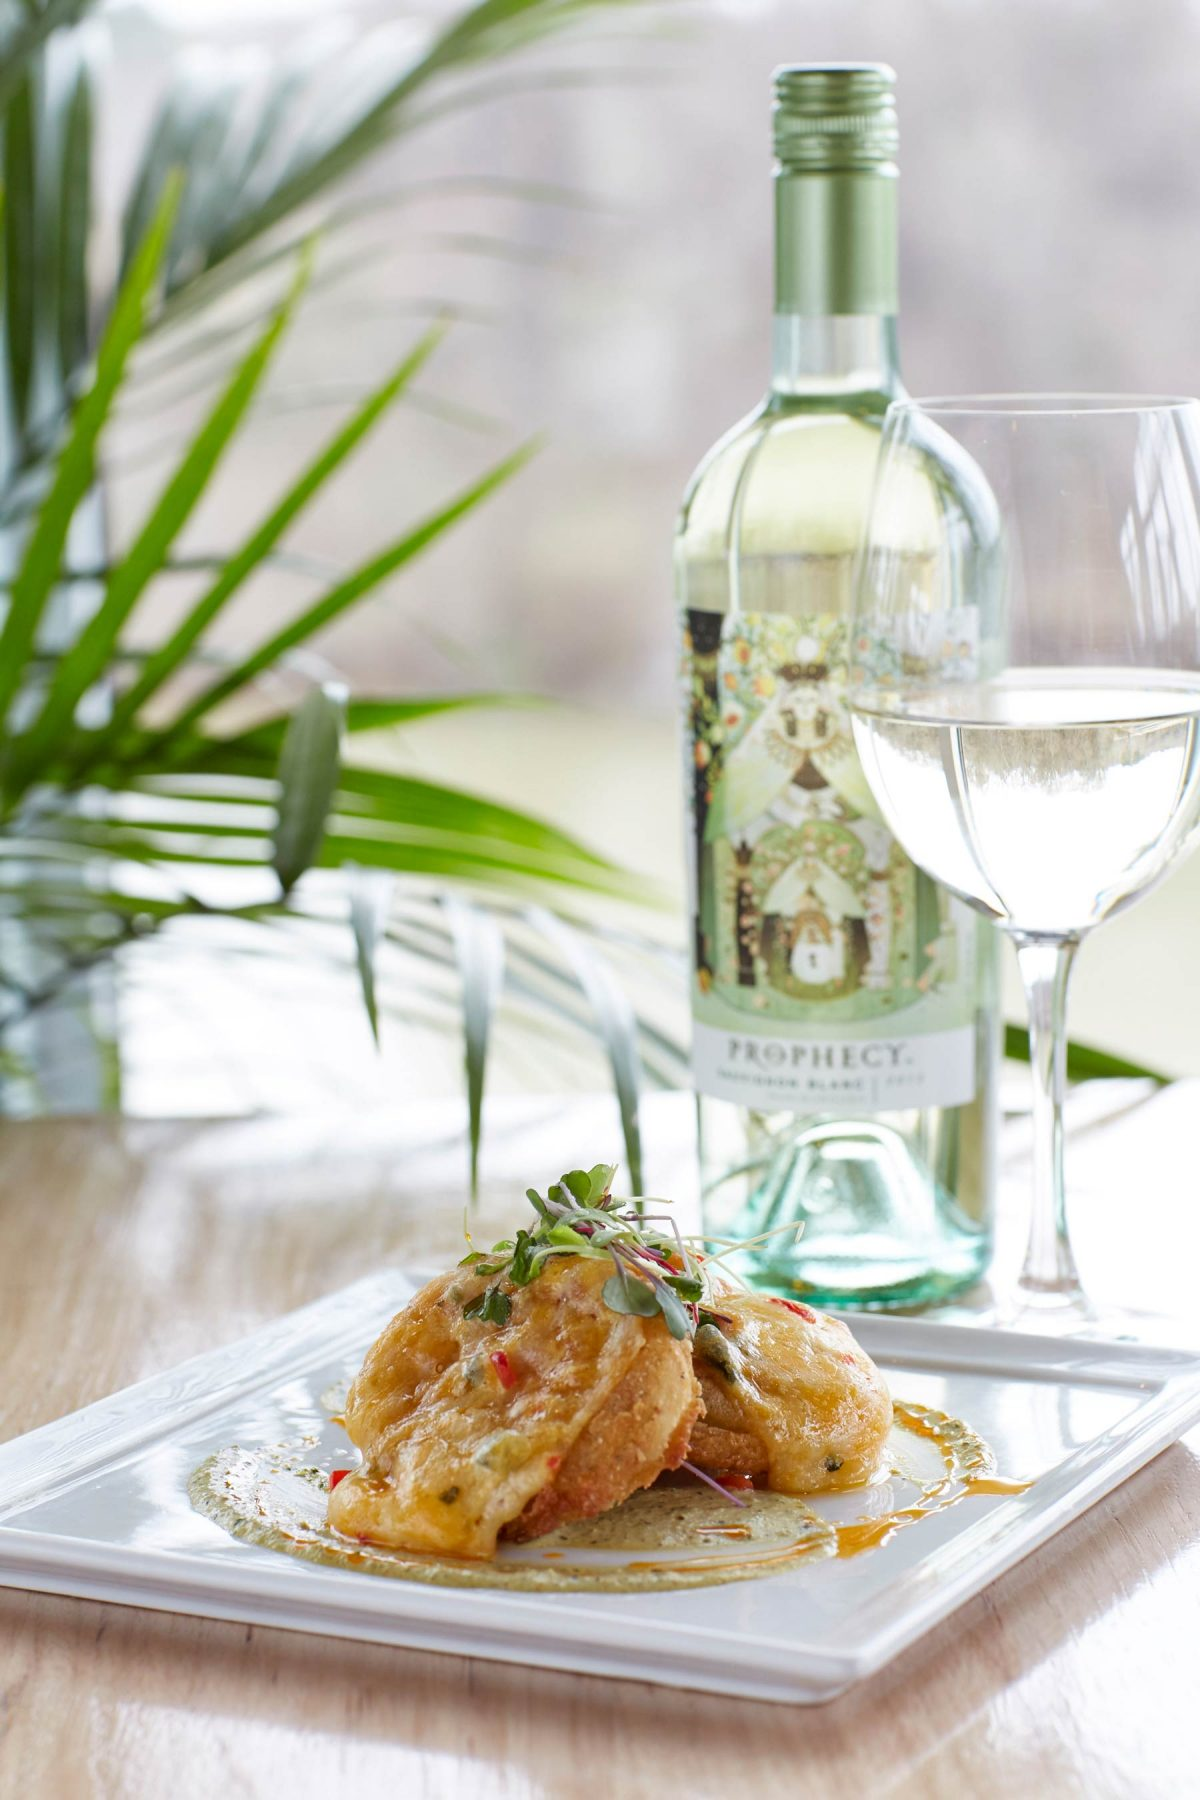 Food lifestyle photography of beautifully plated fried green tomatoes next to a bottle and glass of white wine on a wood table